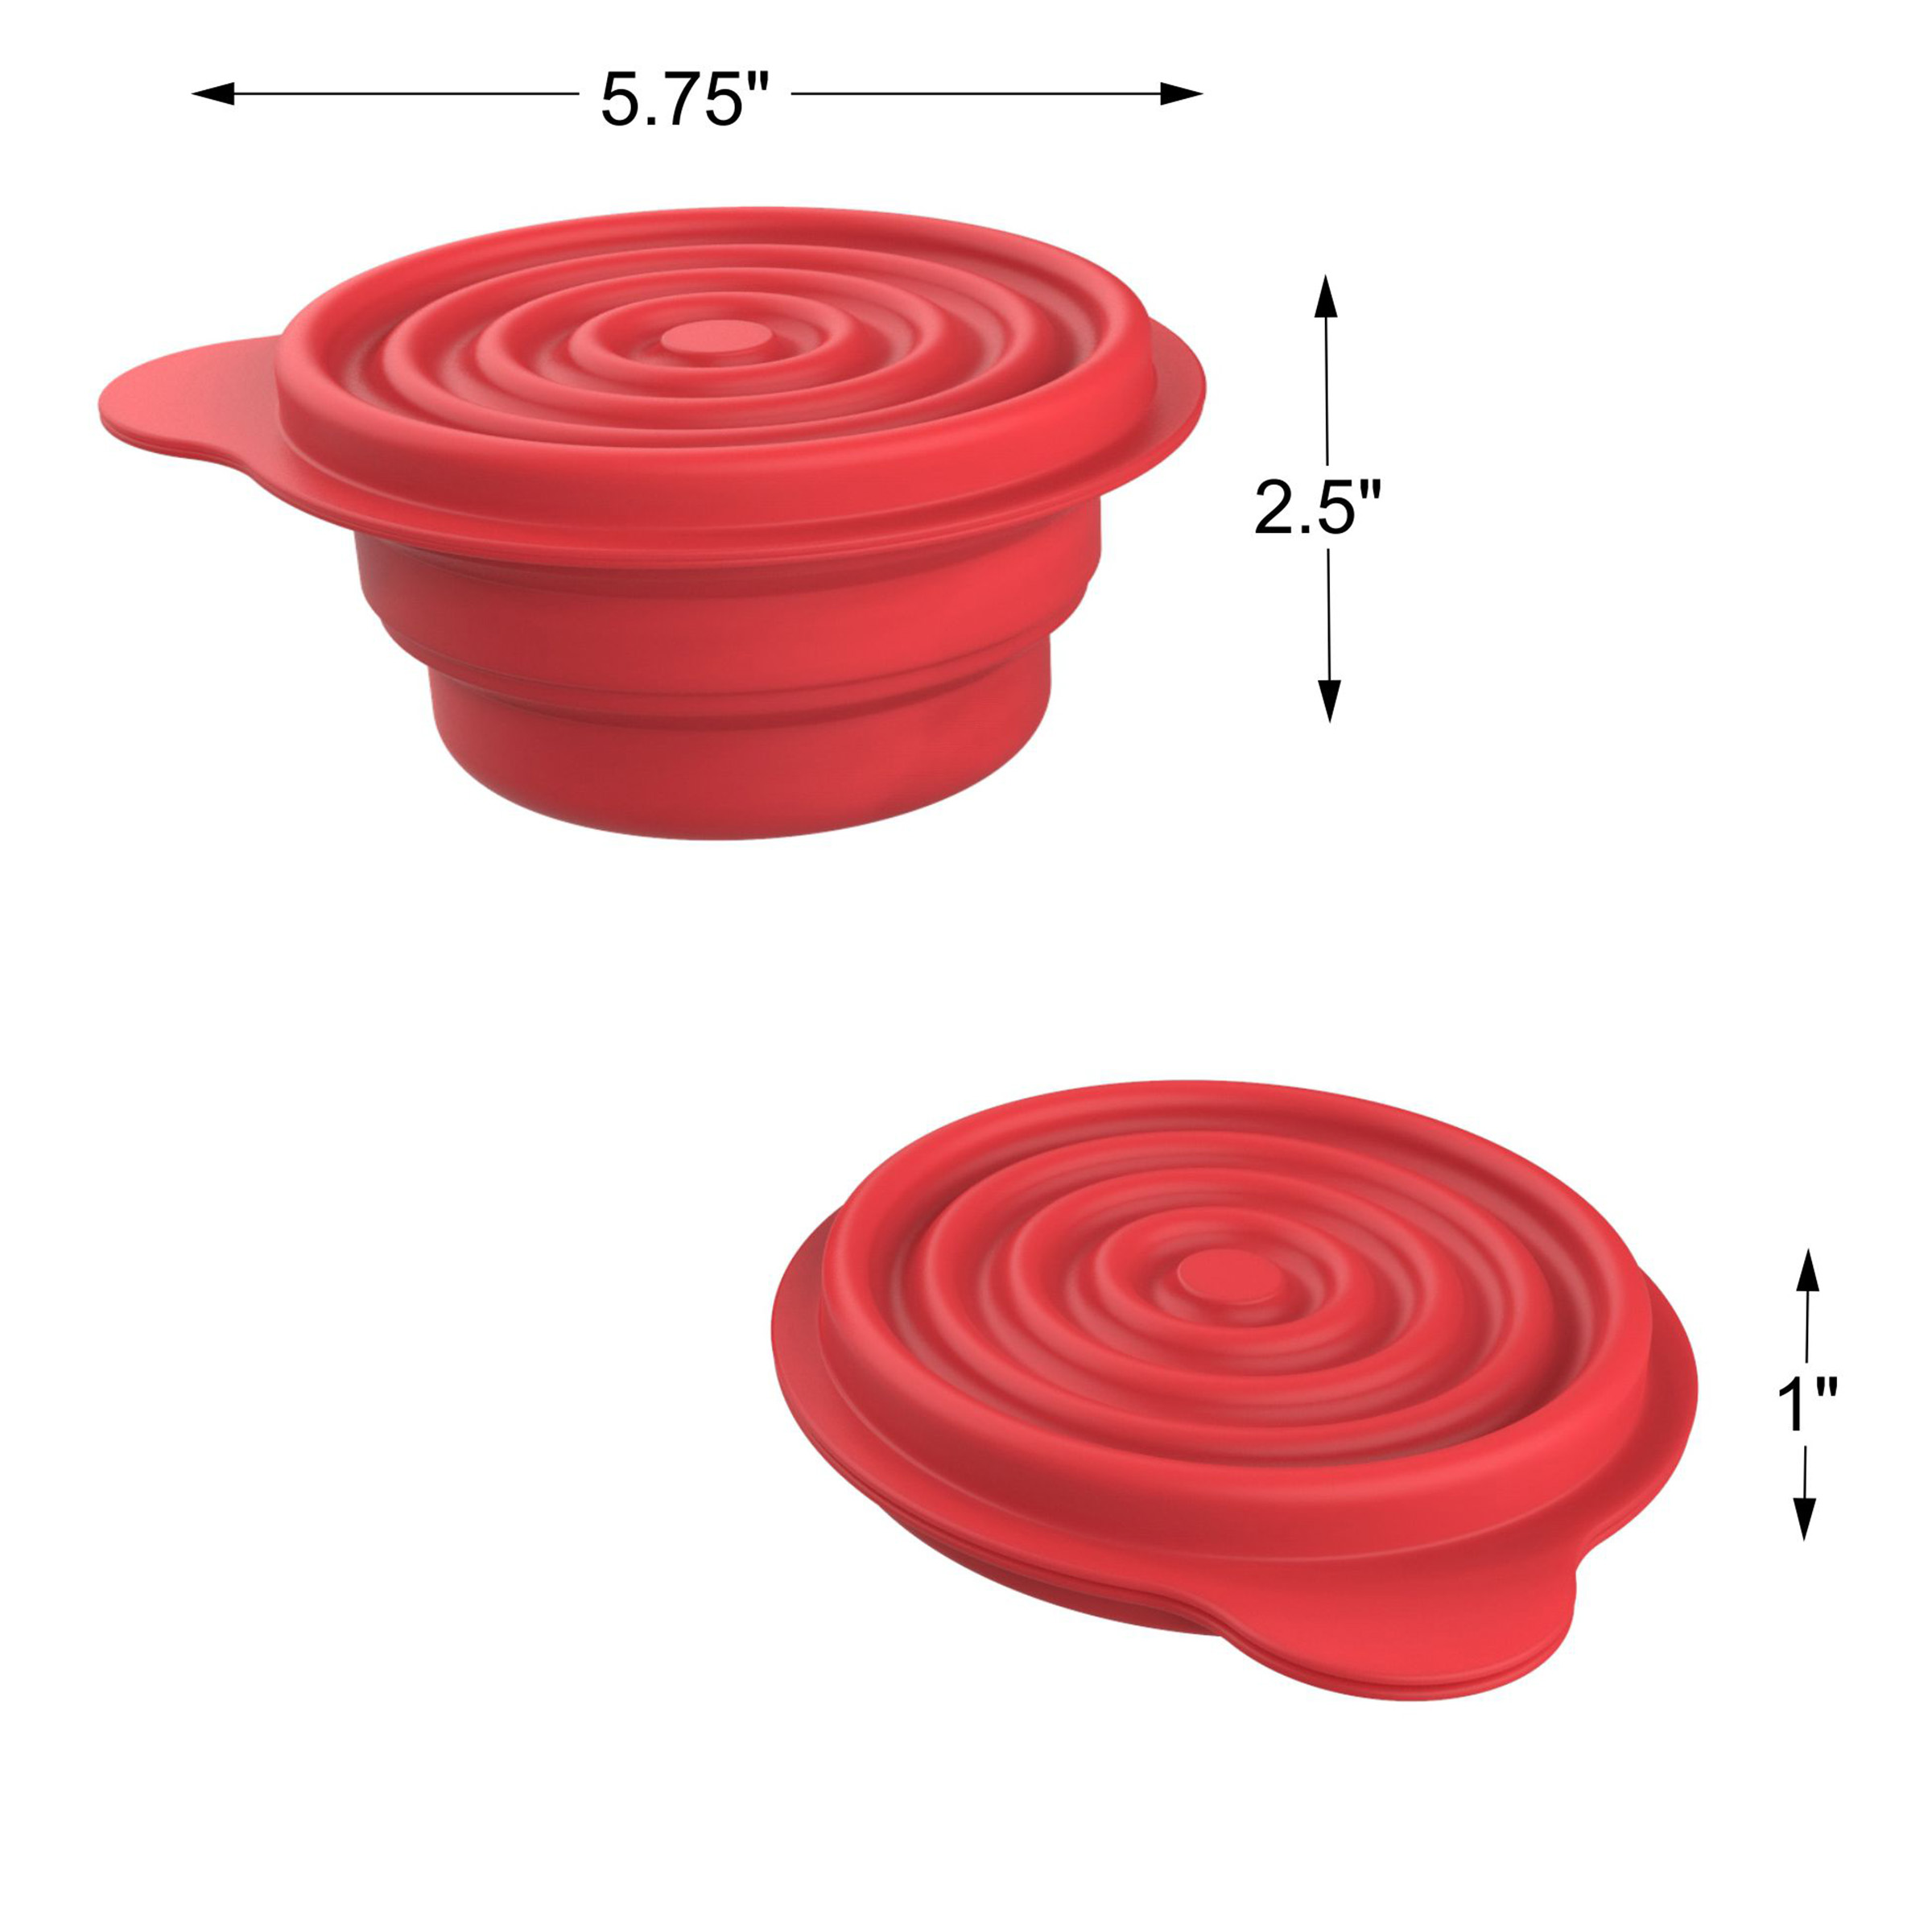 School Student Office YYCC Collapsible Silicone Bowl with Lid 500ML 1000ML for Outdoor Camping Travel Hiking and Indoor Home Kitchen Food-Grade